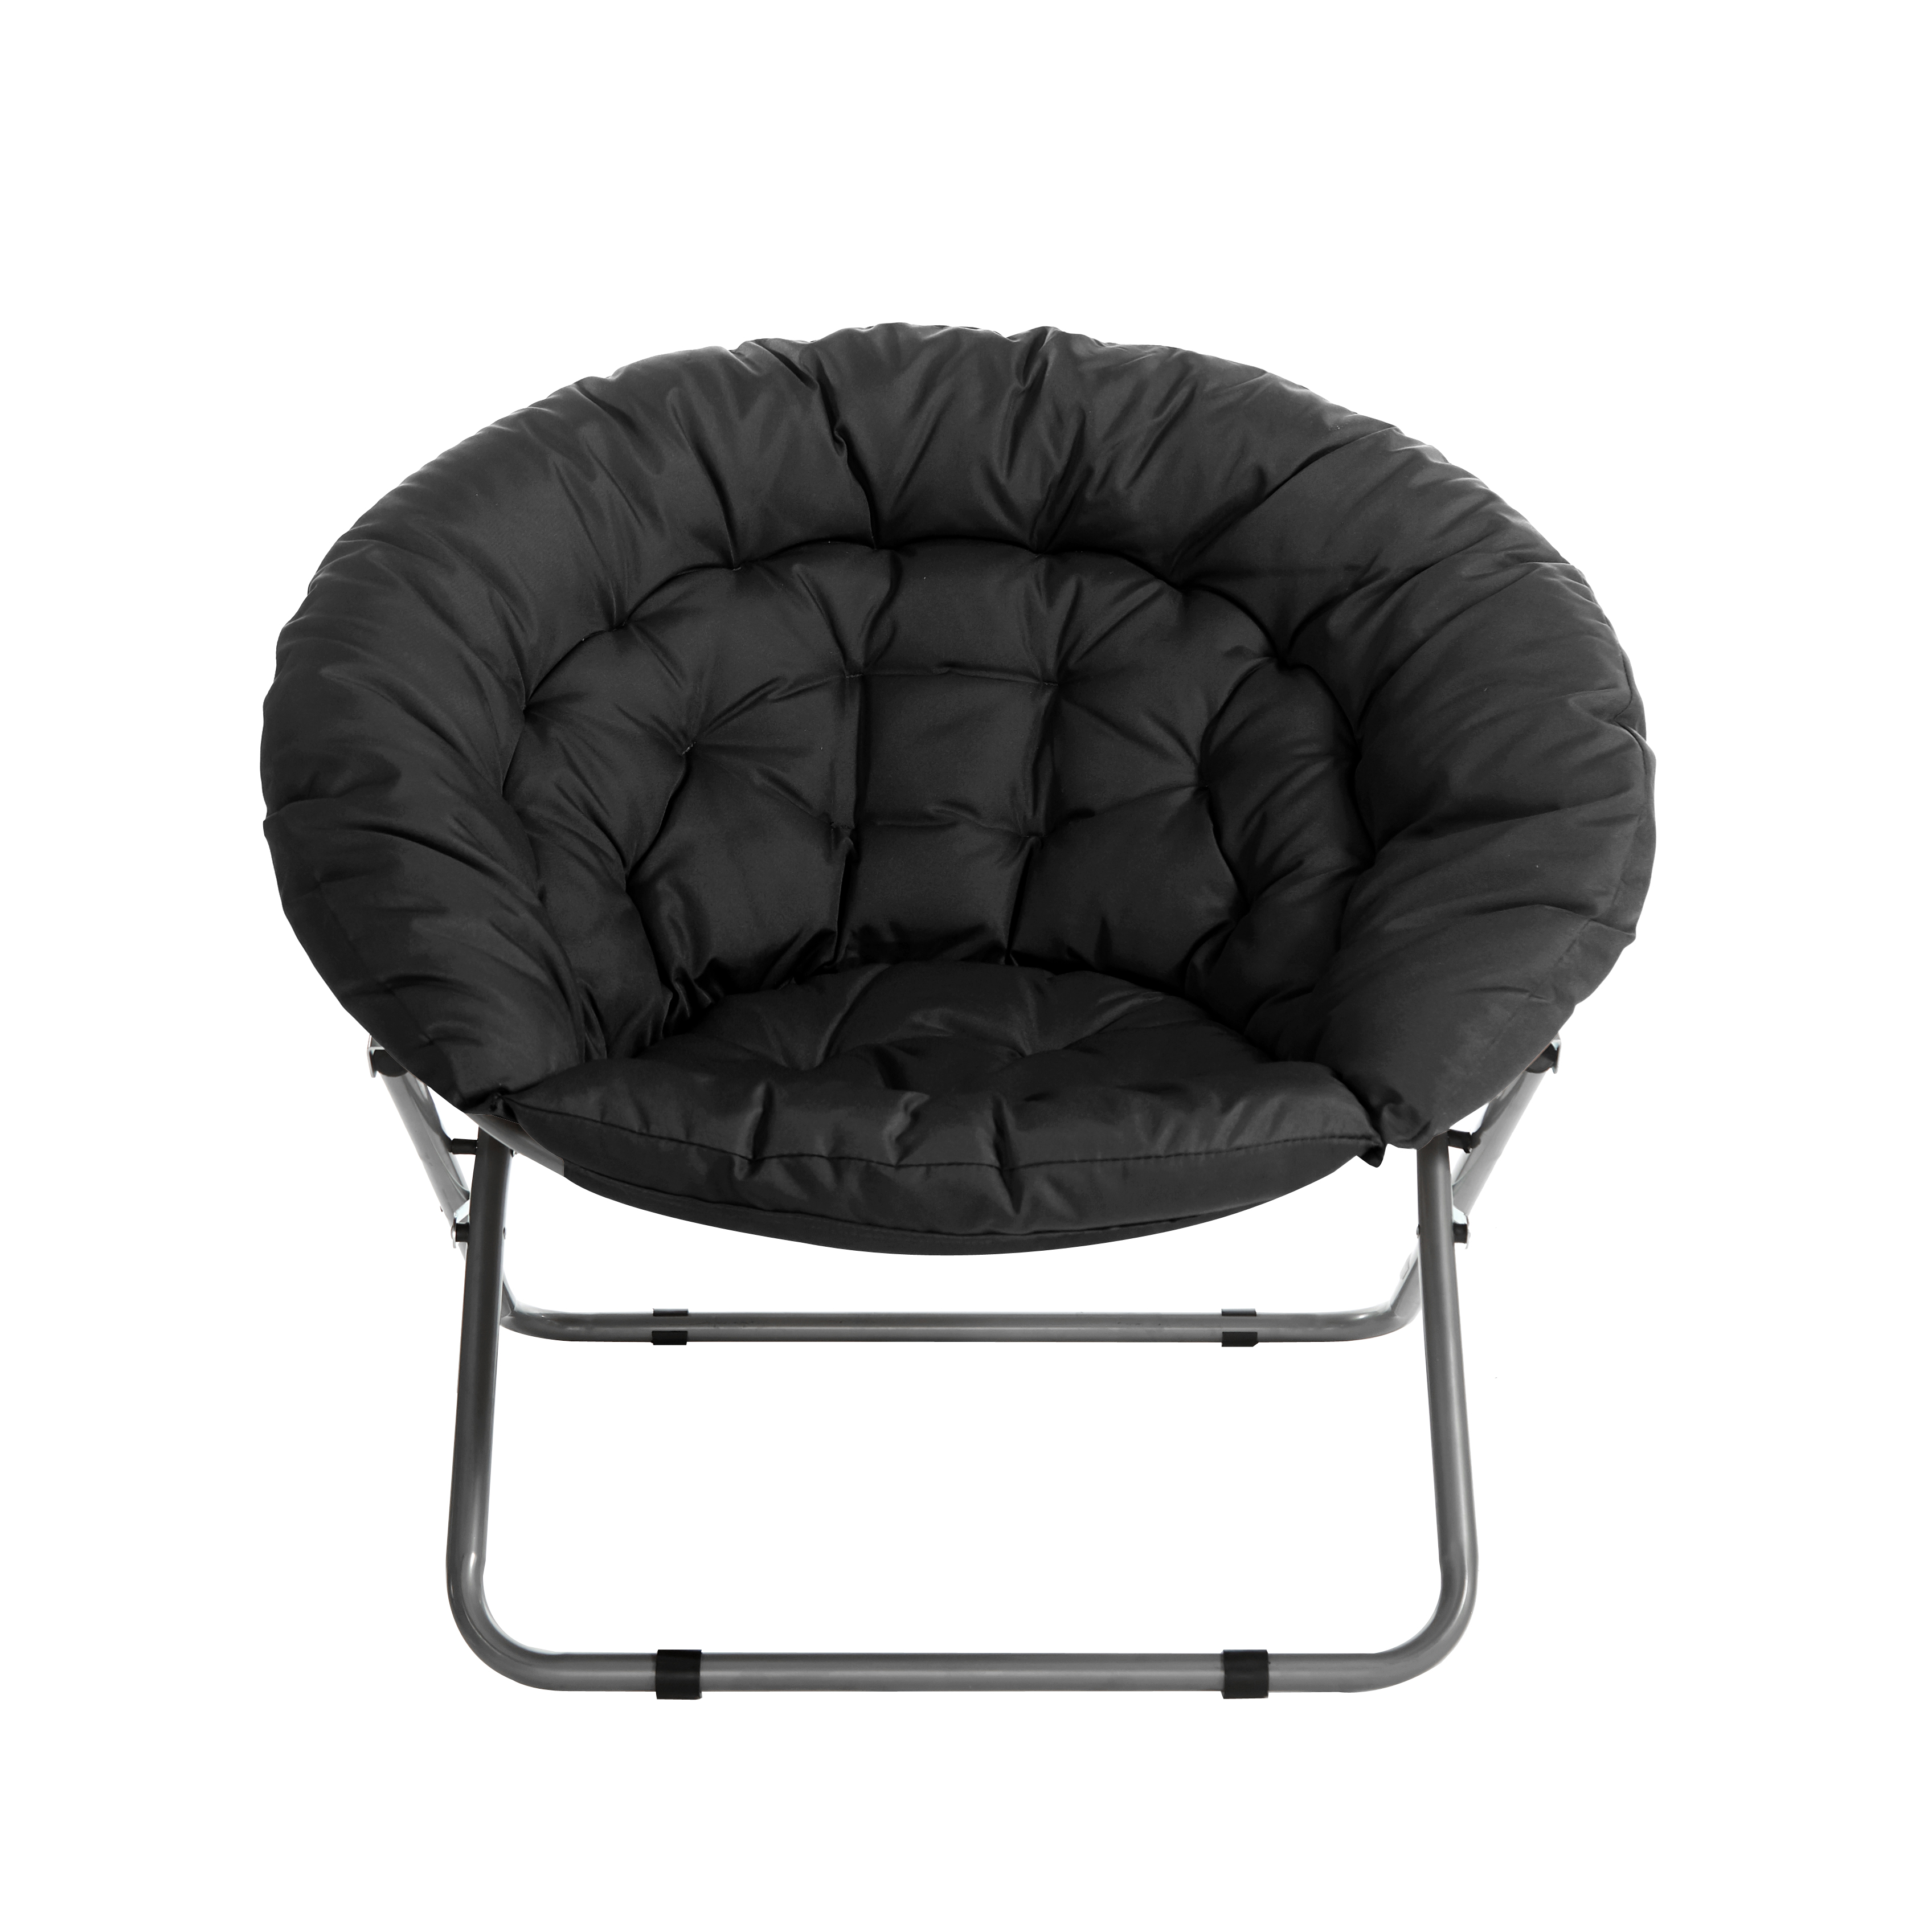 Urban Shop Oversized Moon Chair Available In Multiple Colors Walmart Com Walmart Com